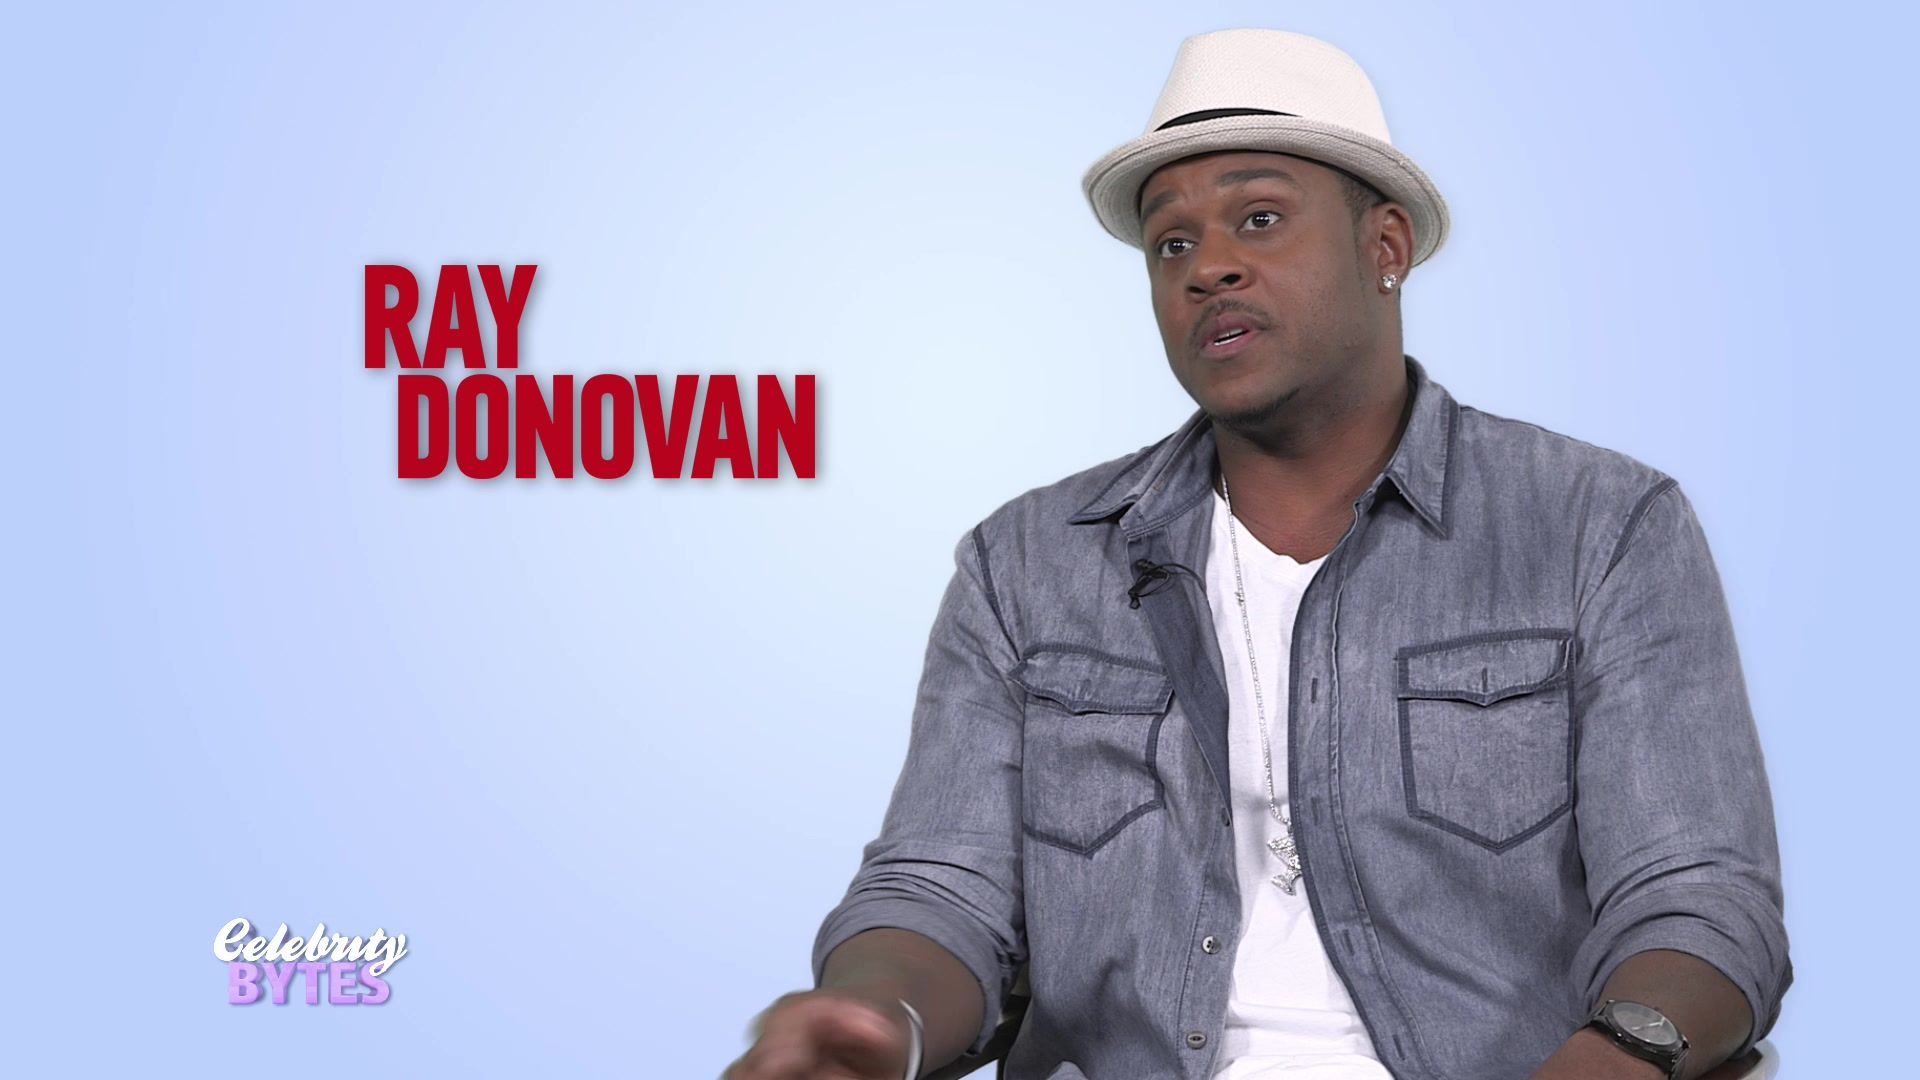 Pooch Hall Talks Ray Donovan Season 3 And Working With Angelina Jolie's Father Jon Voight